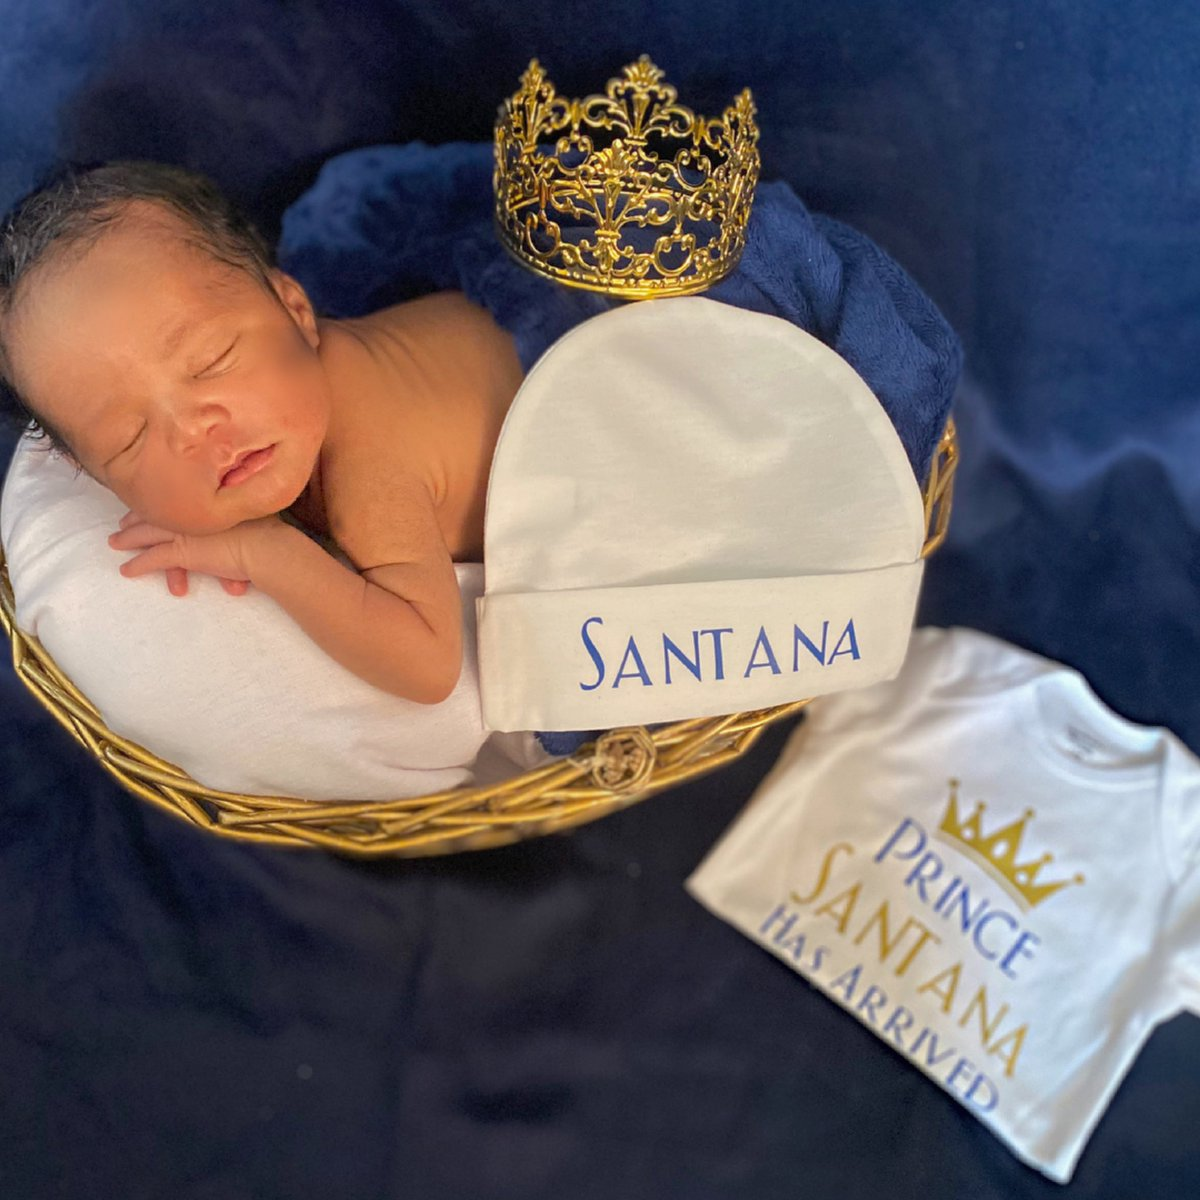 Baby Santana! Mommy took these BTW!  How'd I do ?  #SantanaPrince  #princecharming  #newbornphotography  #cutebabies  #naturallyperfectkids pic.twitter.com/CV7T8ZnzOa